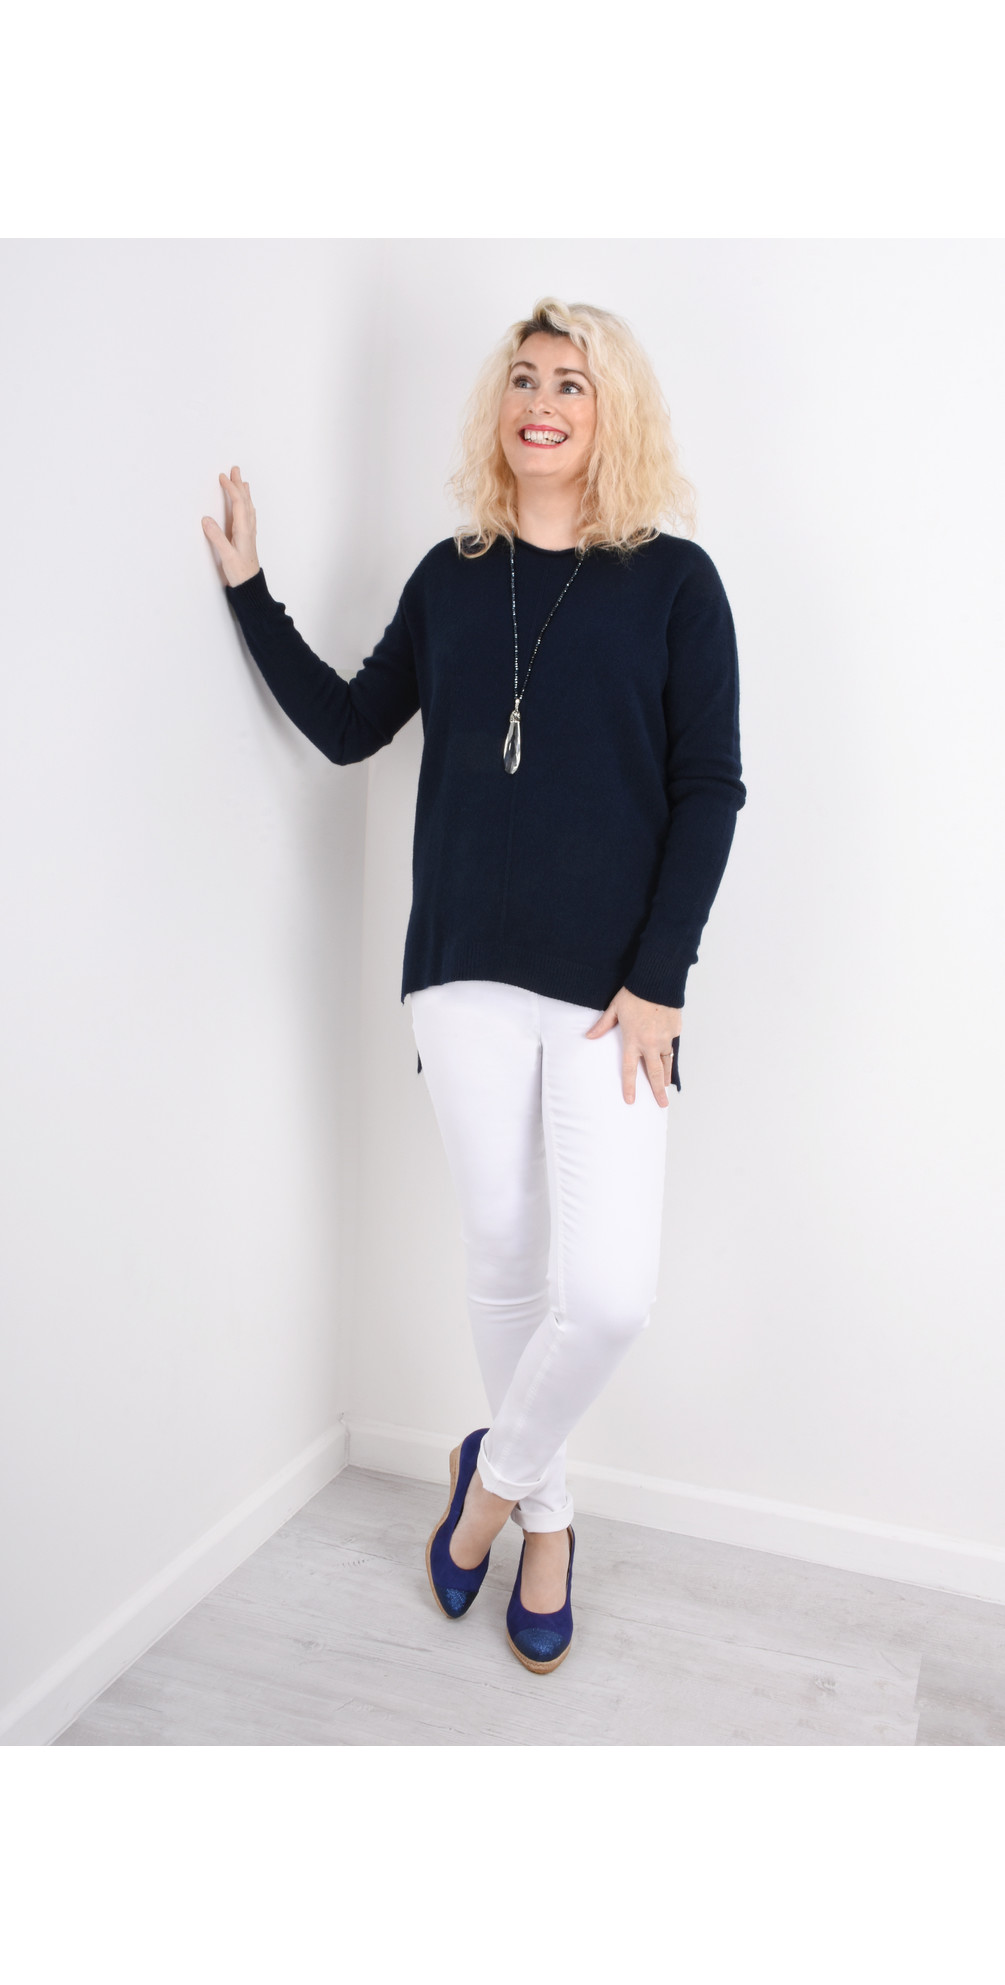 Marty Easyfit Supersoft Knit Jumper main image